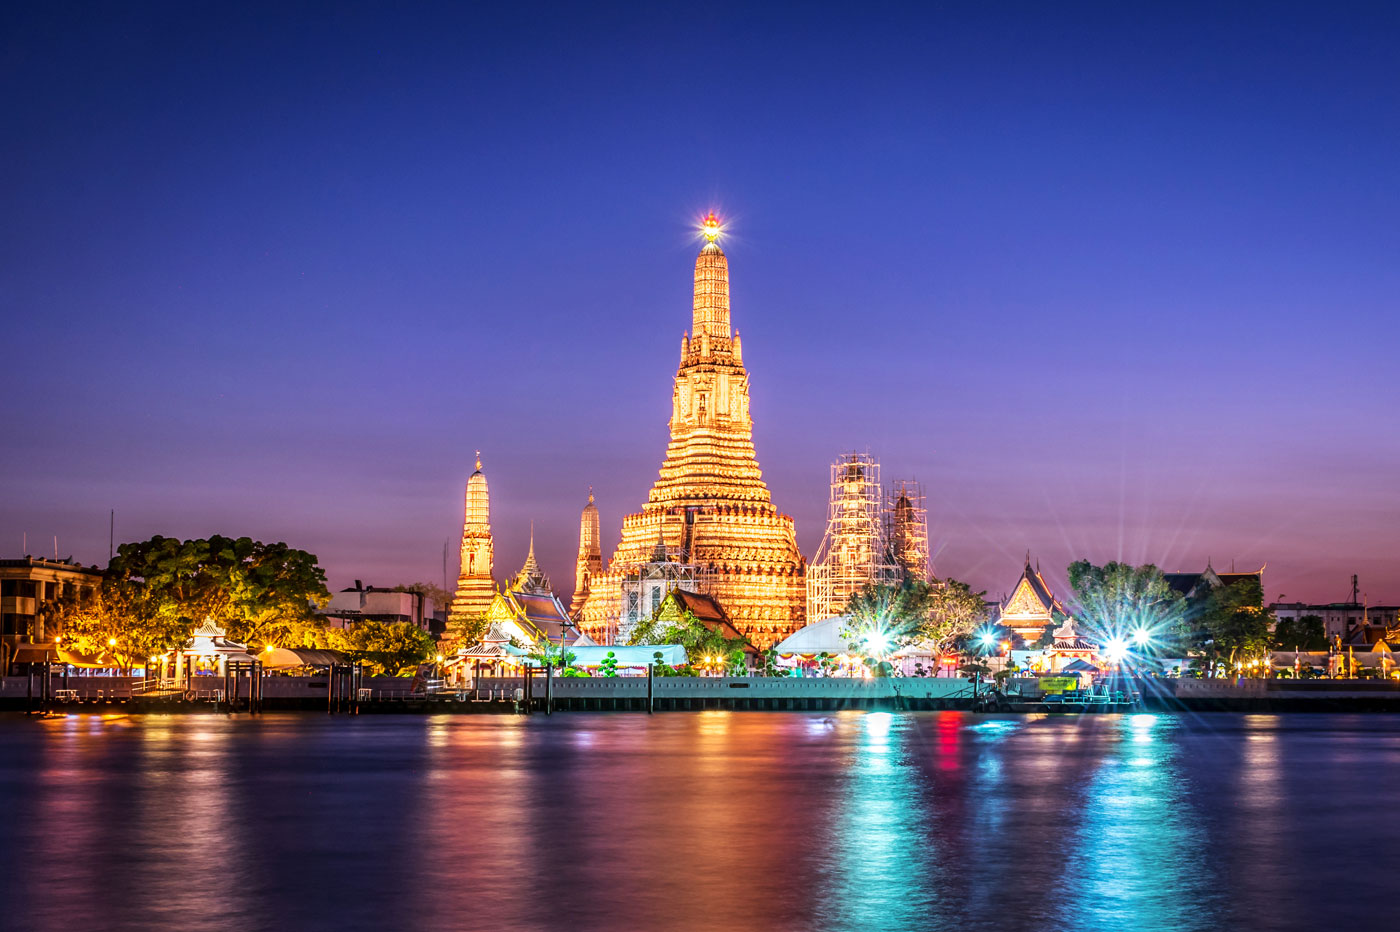 Wat Arun Temple in Thailand